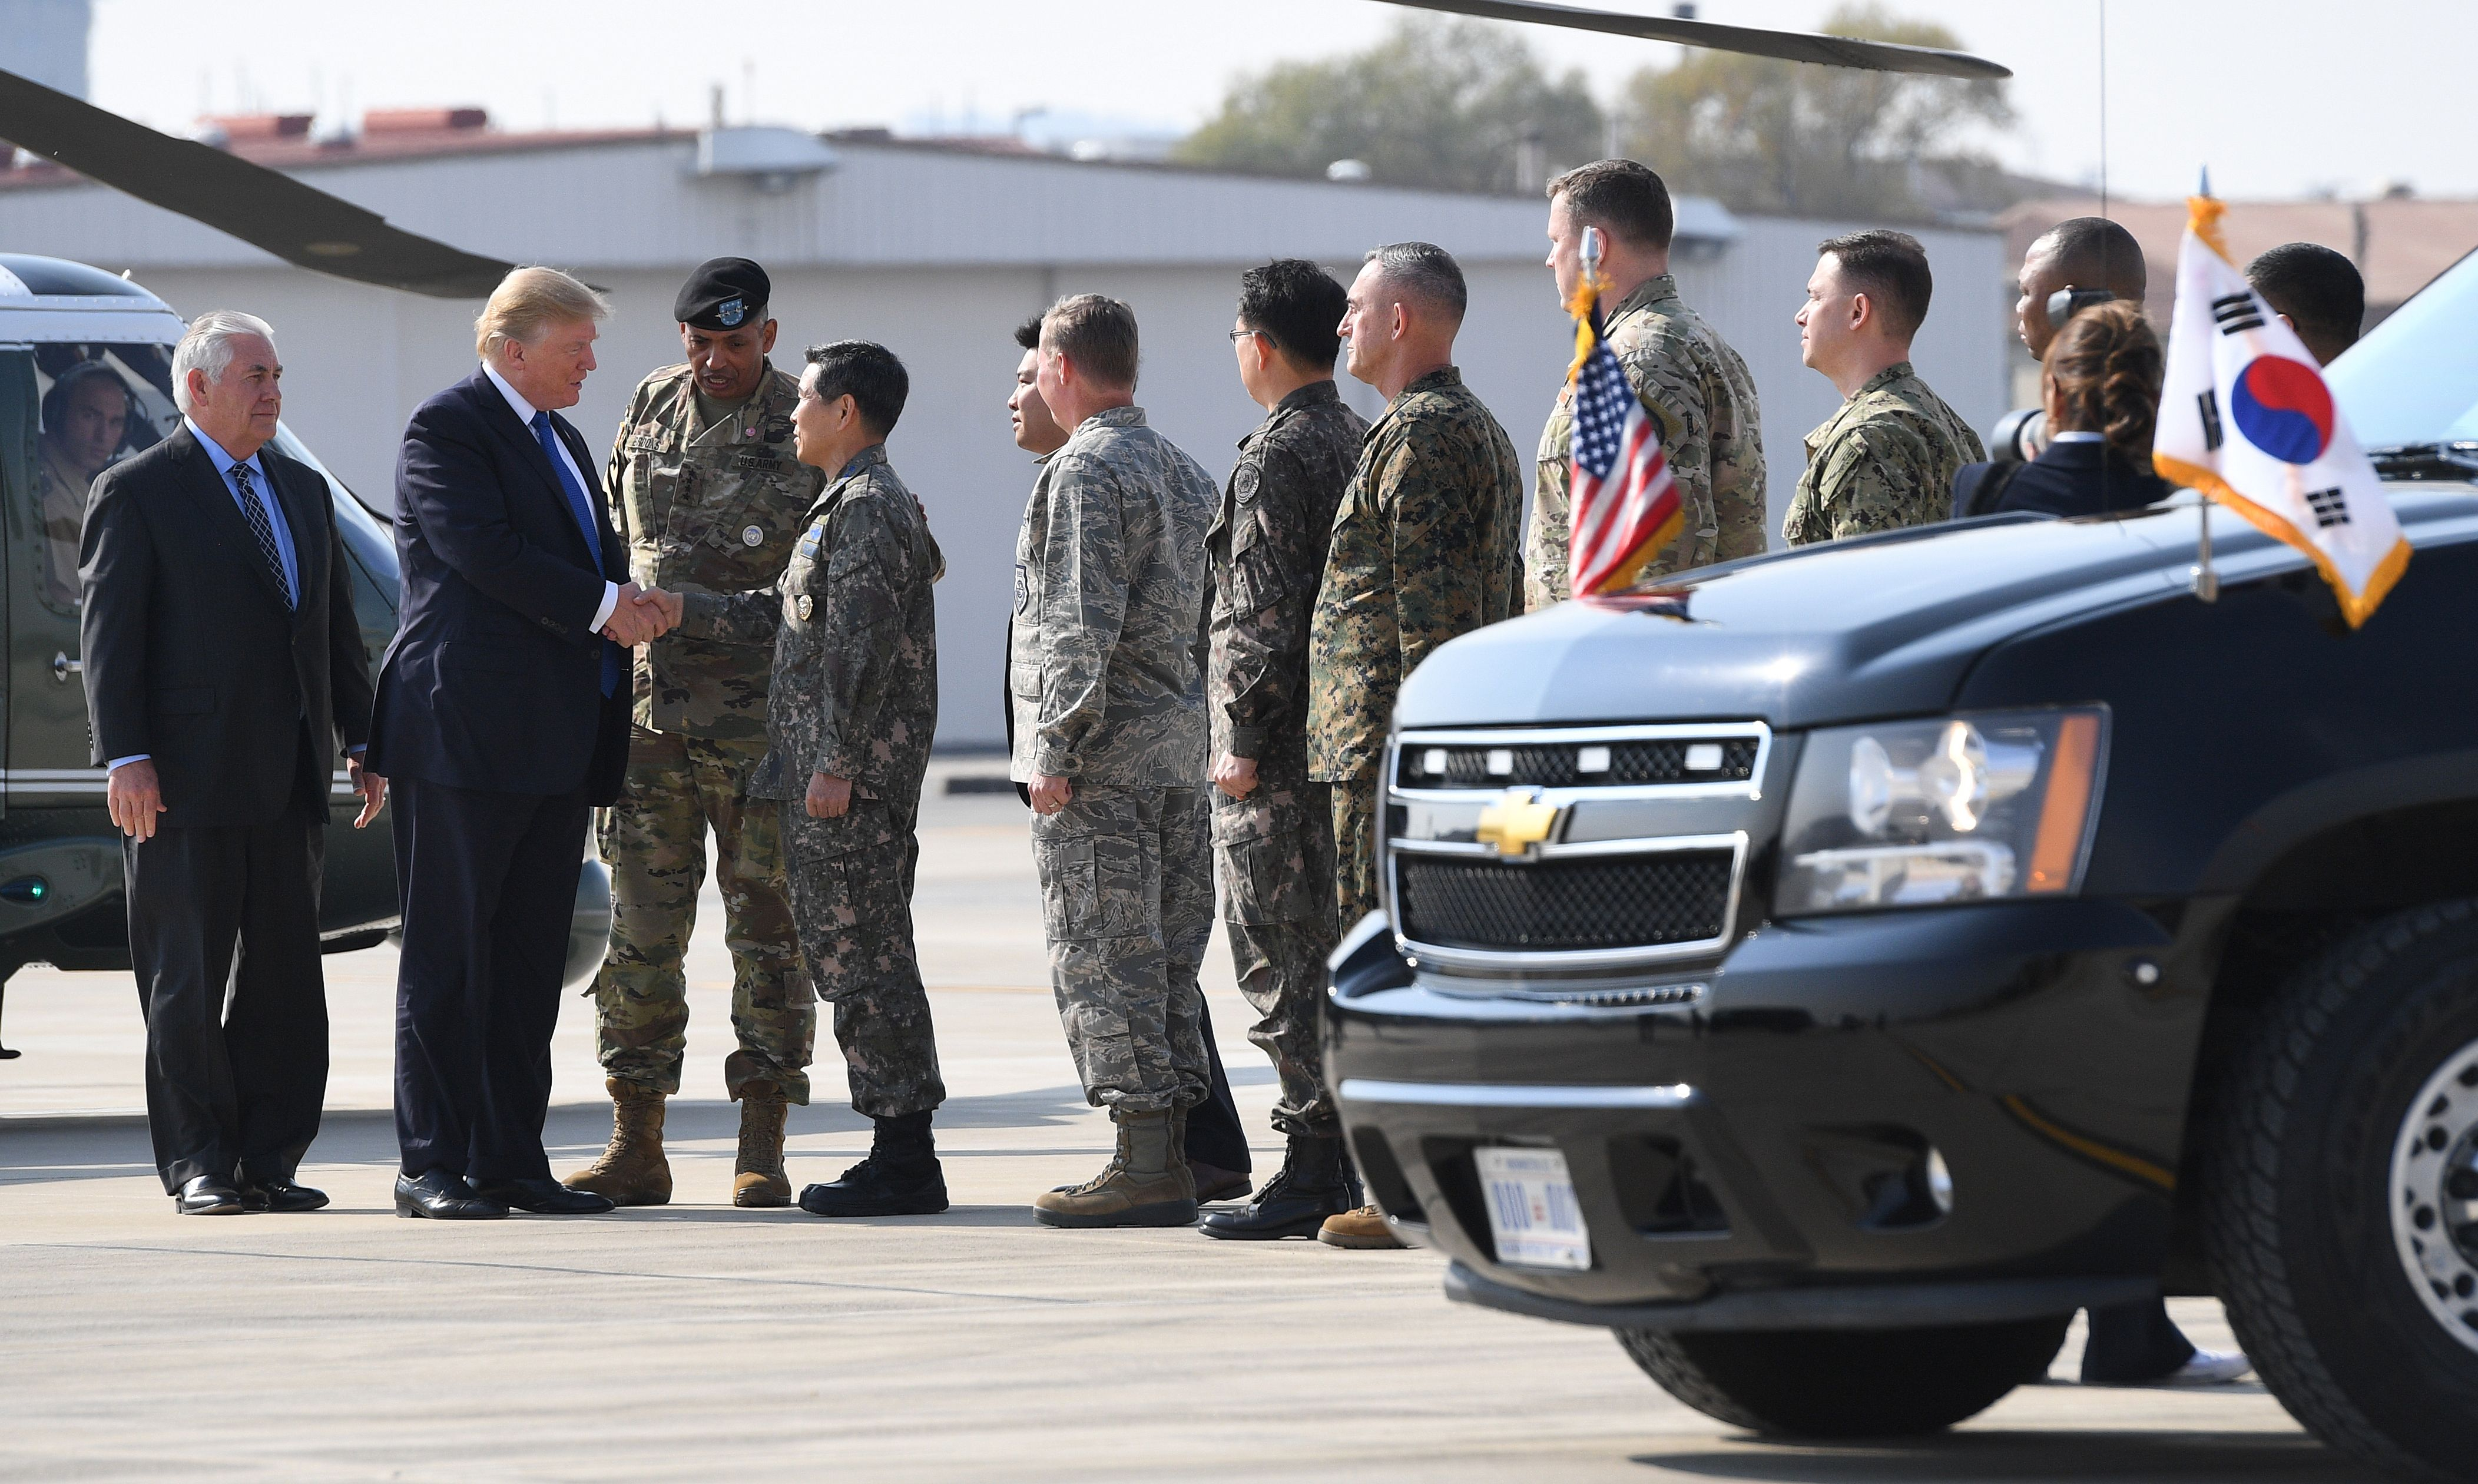 US President Donald Trump (2nd-L) greets military personnel upon arriving at Camp Humphreys in Pyeongtaek, south of Seoul on November 7, 2017. Trump's marathon Asia tour moves to South Korea, another key ally in the struggle with nuclear-armed North Korea, but one with deep reservations about the US president's strategy for dealing with the crisis JIM WATSON/AFP/Getty Images